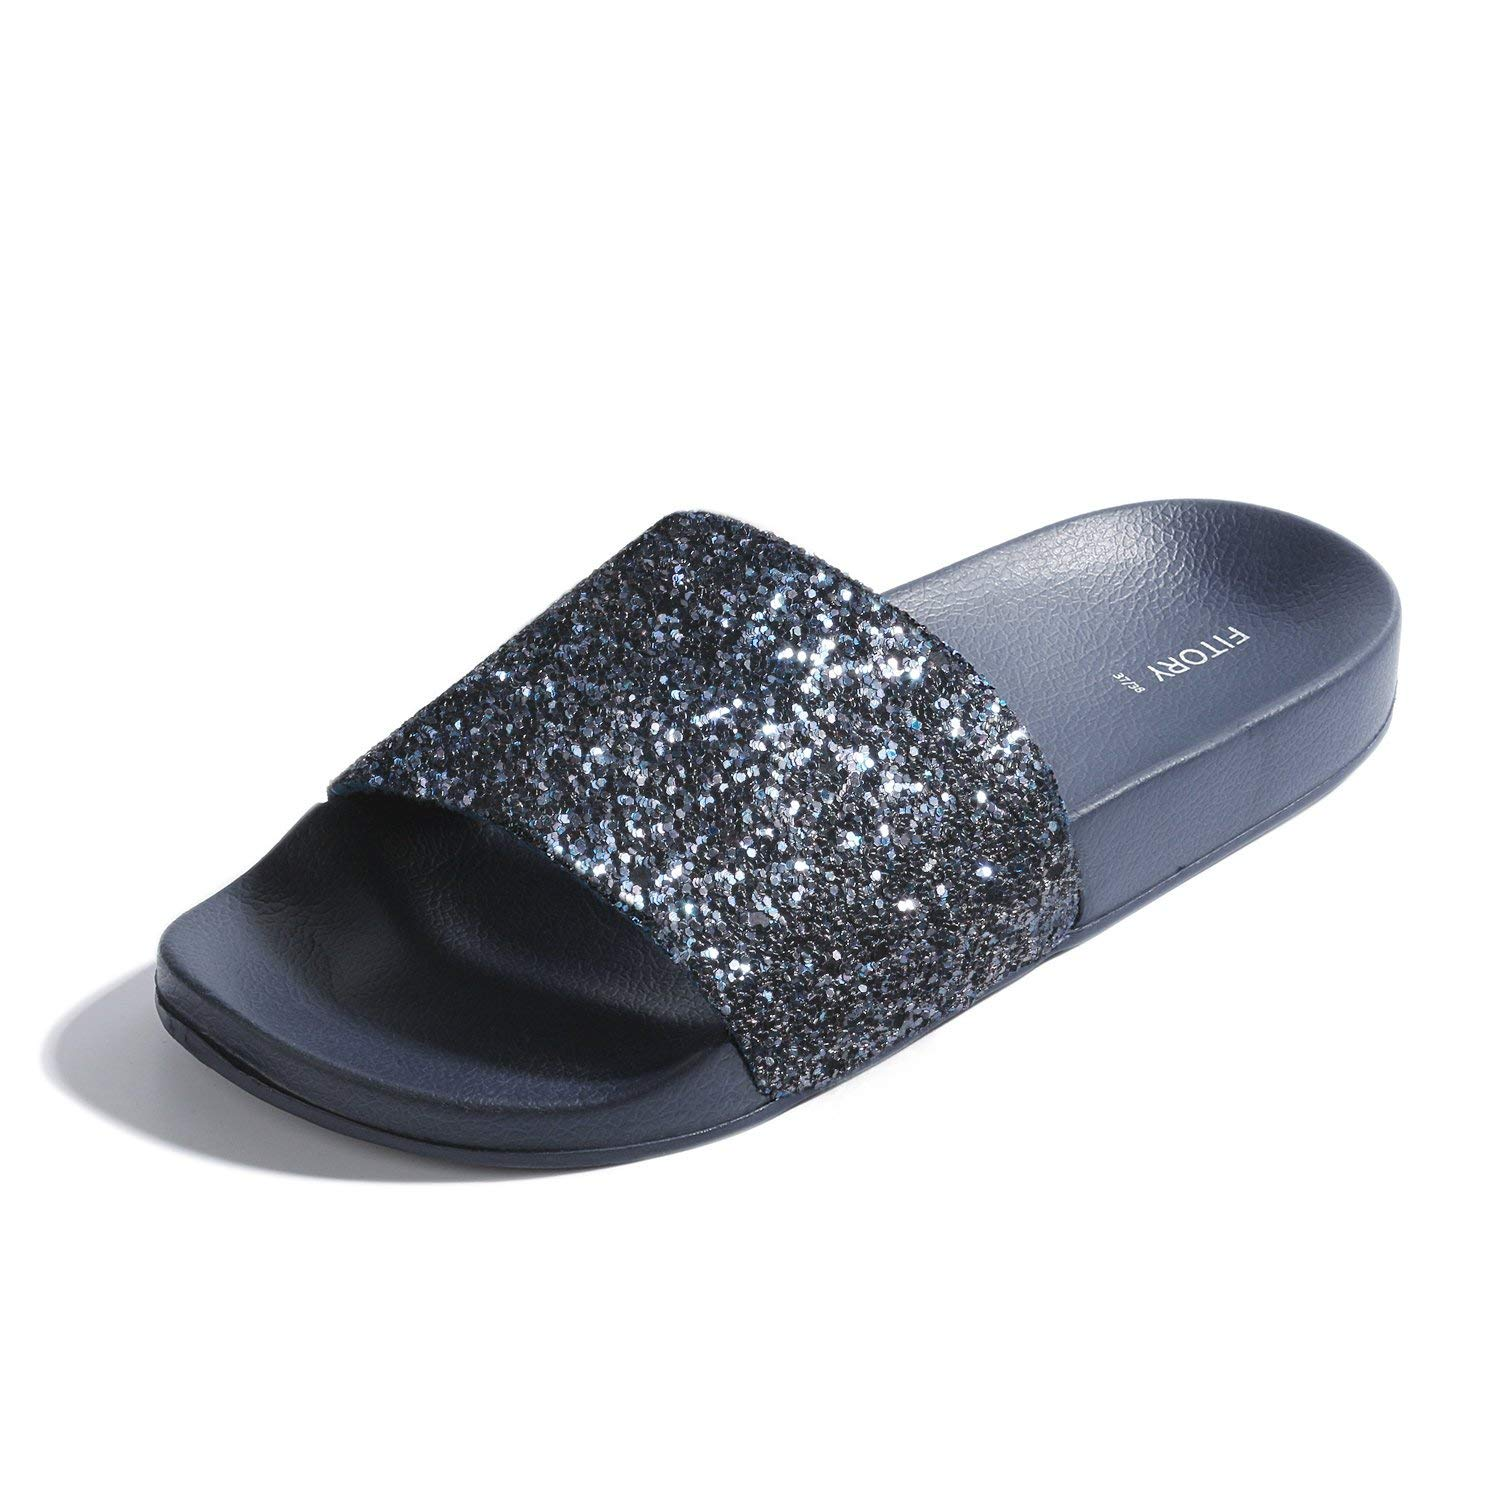 6be37b820 Get Quotations · FITORY Women Slides, Sparkly Glitter Arch Support Slippers  with Bling Slip on Flats Sandals for